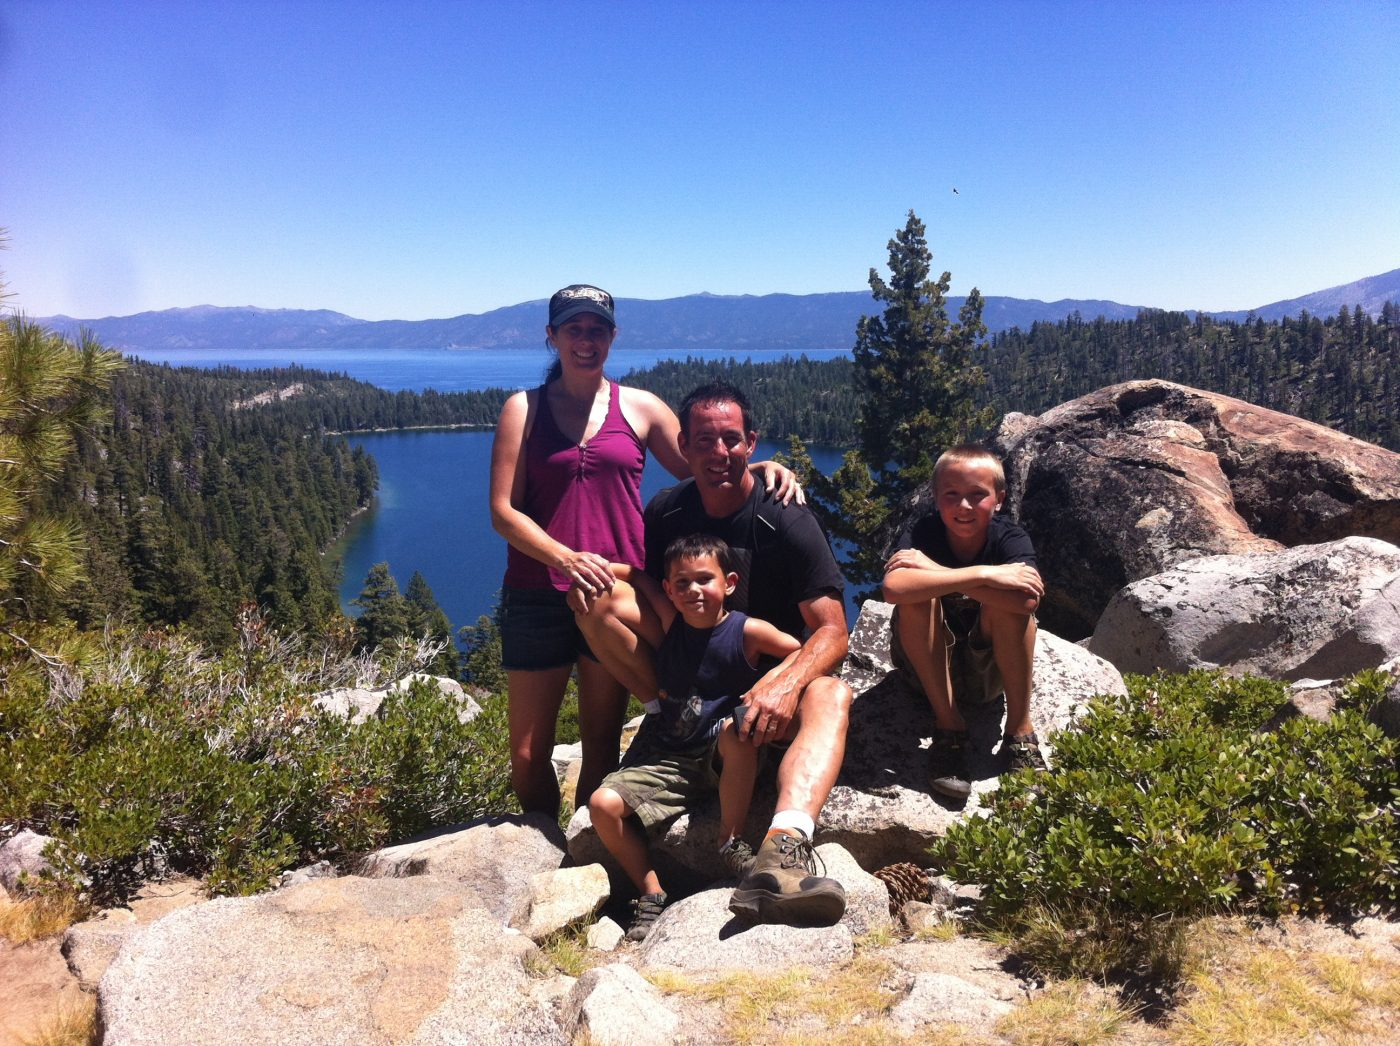 Lake Tahoe – The Perfect Family Summer Vacation Getaway